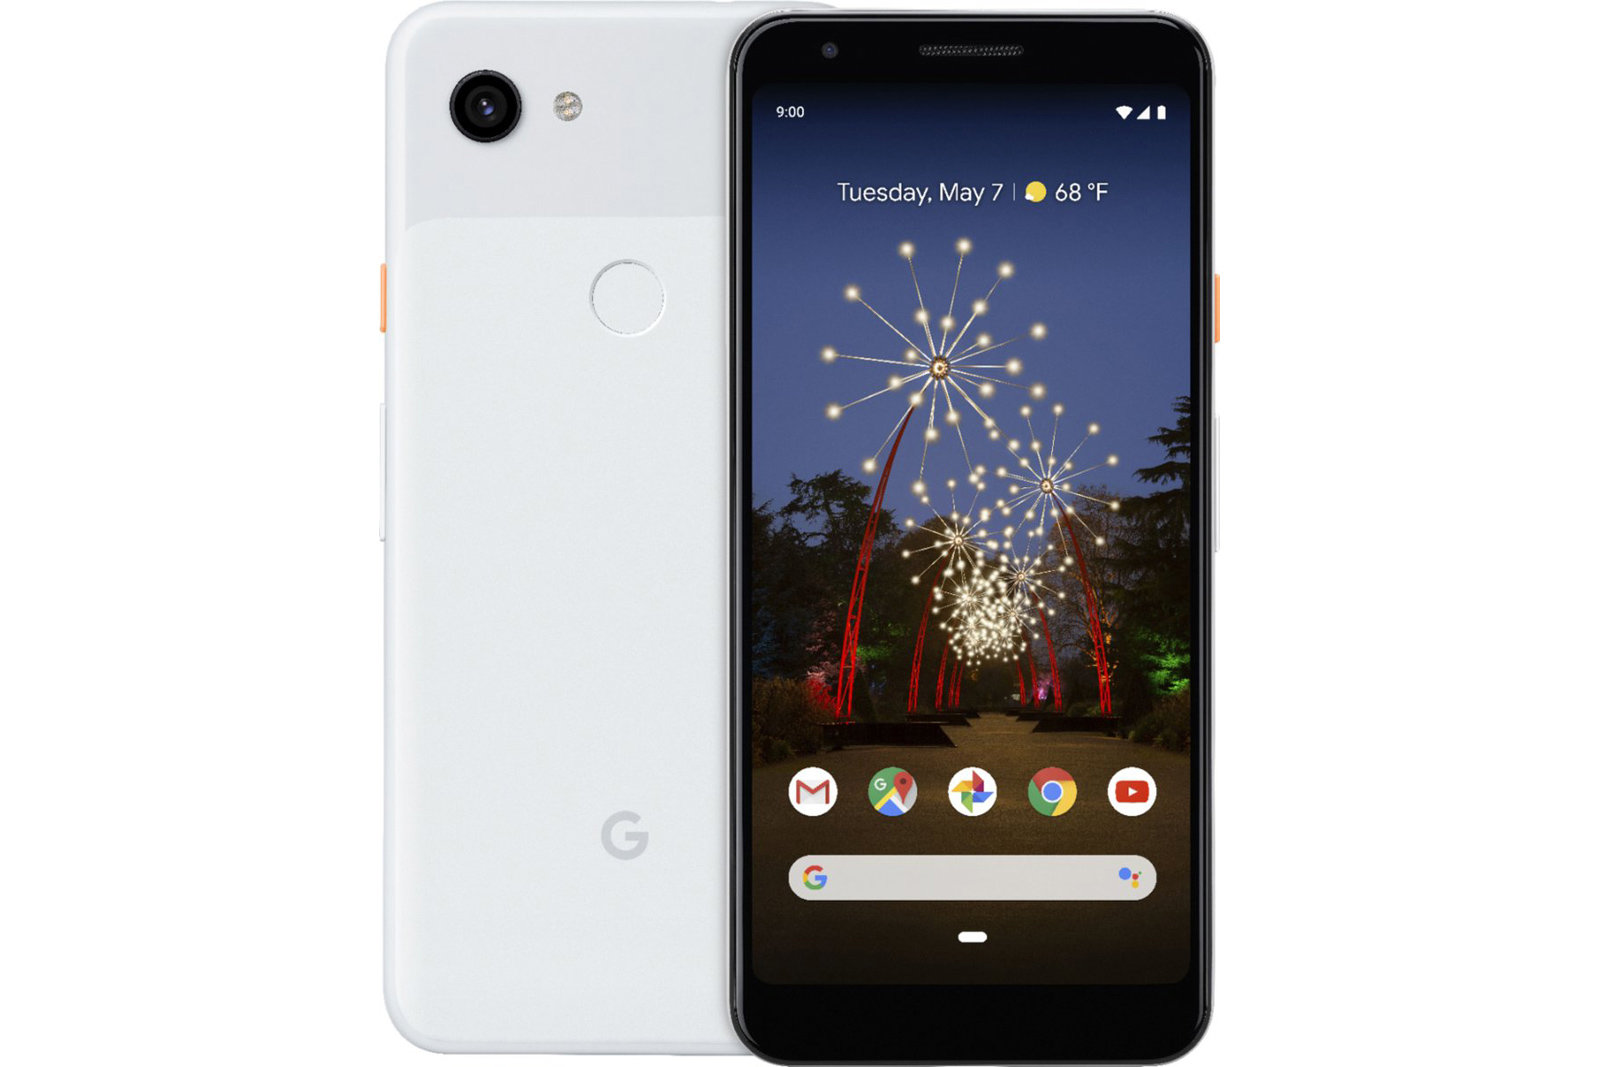 Pixel 3a and Pixel 3a XL